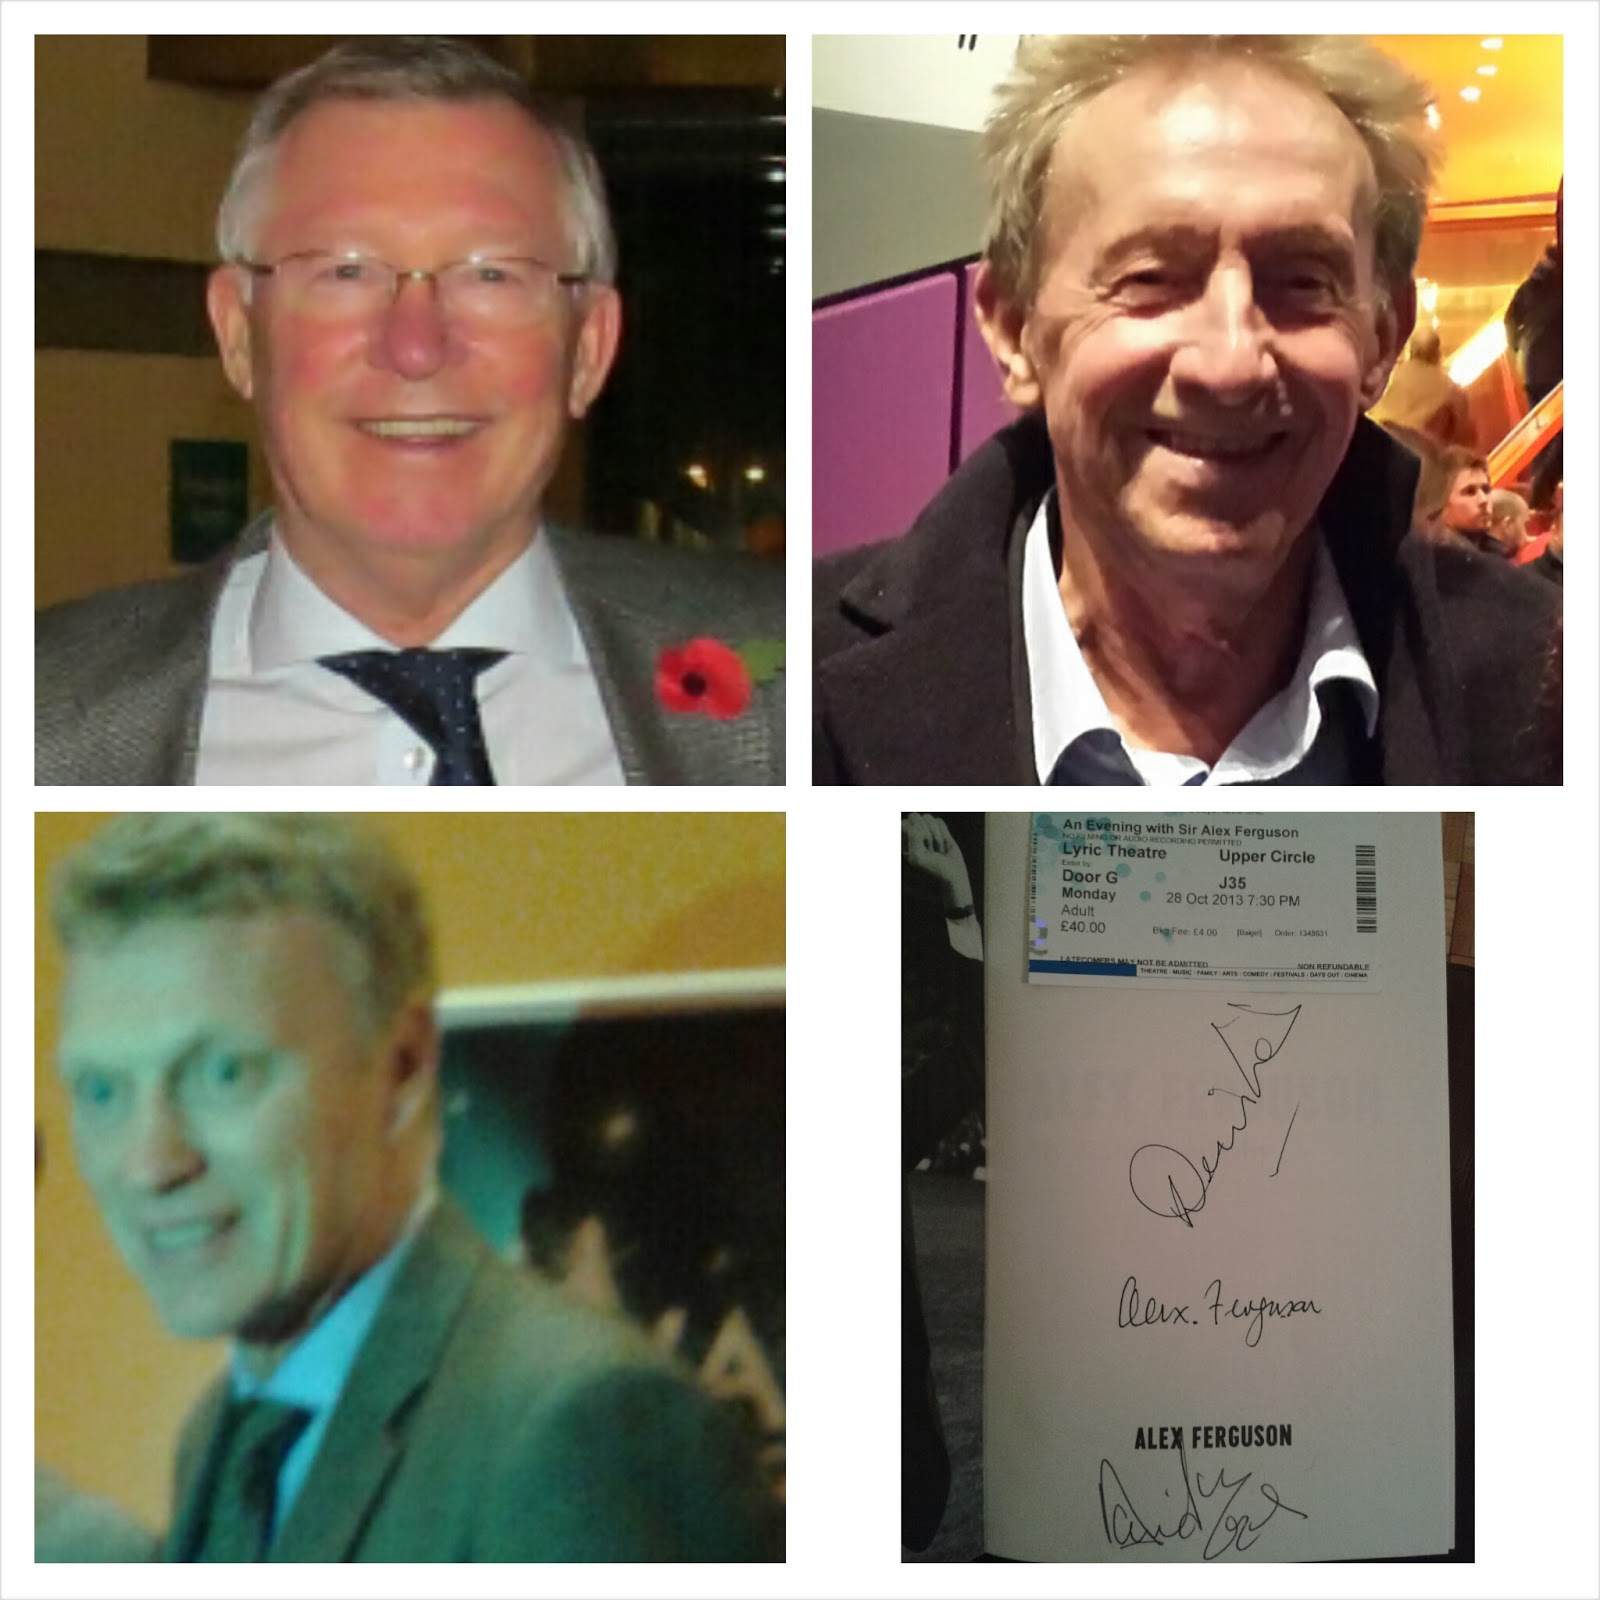 An Evening With Sir Alex Ferguson, plus David Moyes & Denis Law